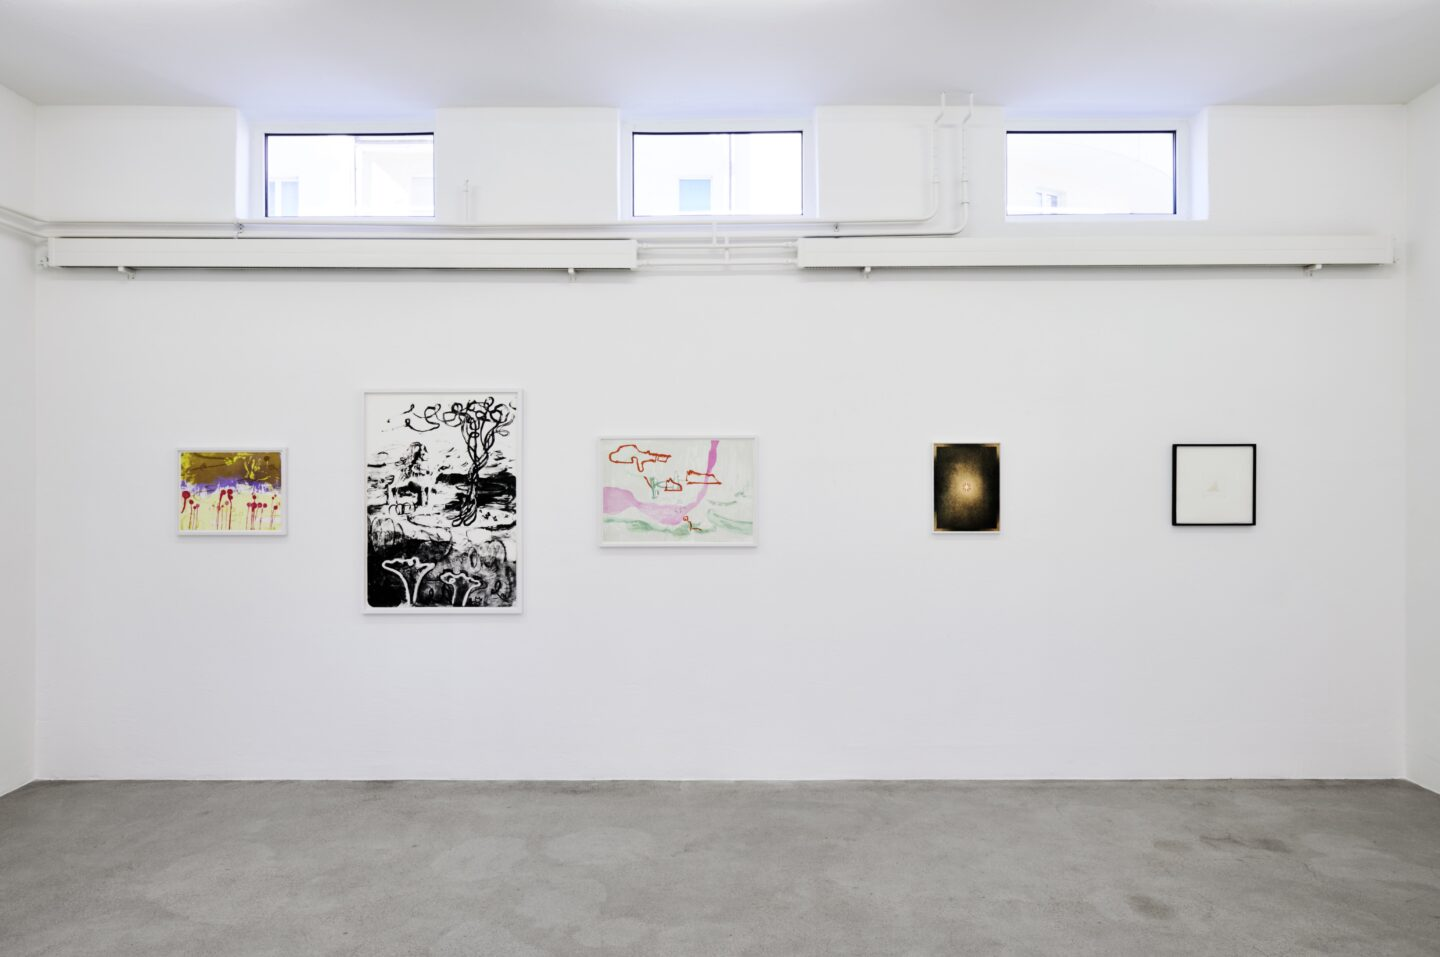 Exhibition View Groupshow «Intaglio and Lithography: Works on Paper; view on Rebekka Steiger, Caroline Bachmann and Not Vital» at Edition VFO, Zurch, 2020 / Photo: Sabina Bosch / Courtesy: the artists and Edition VFO